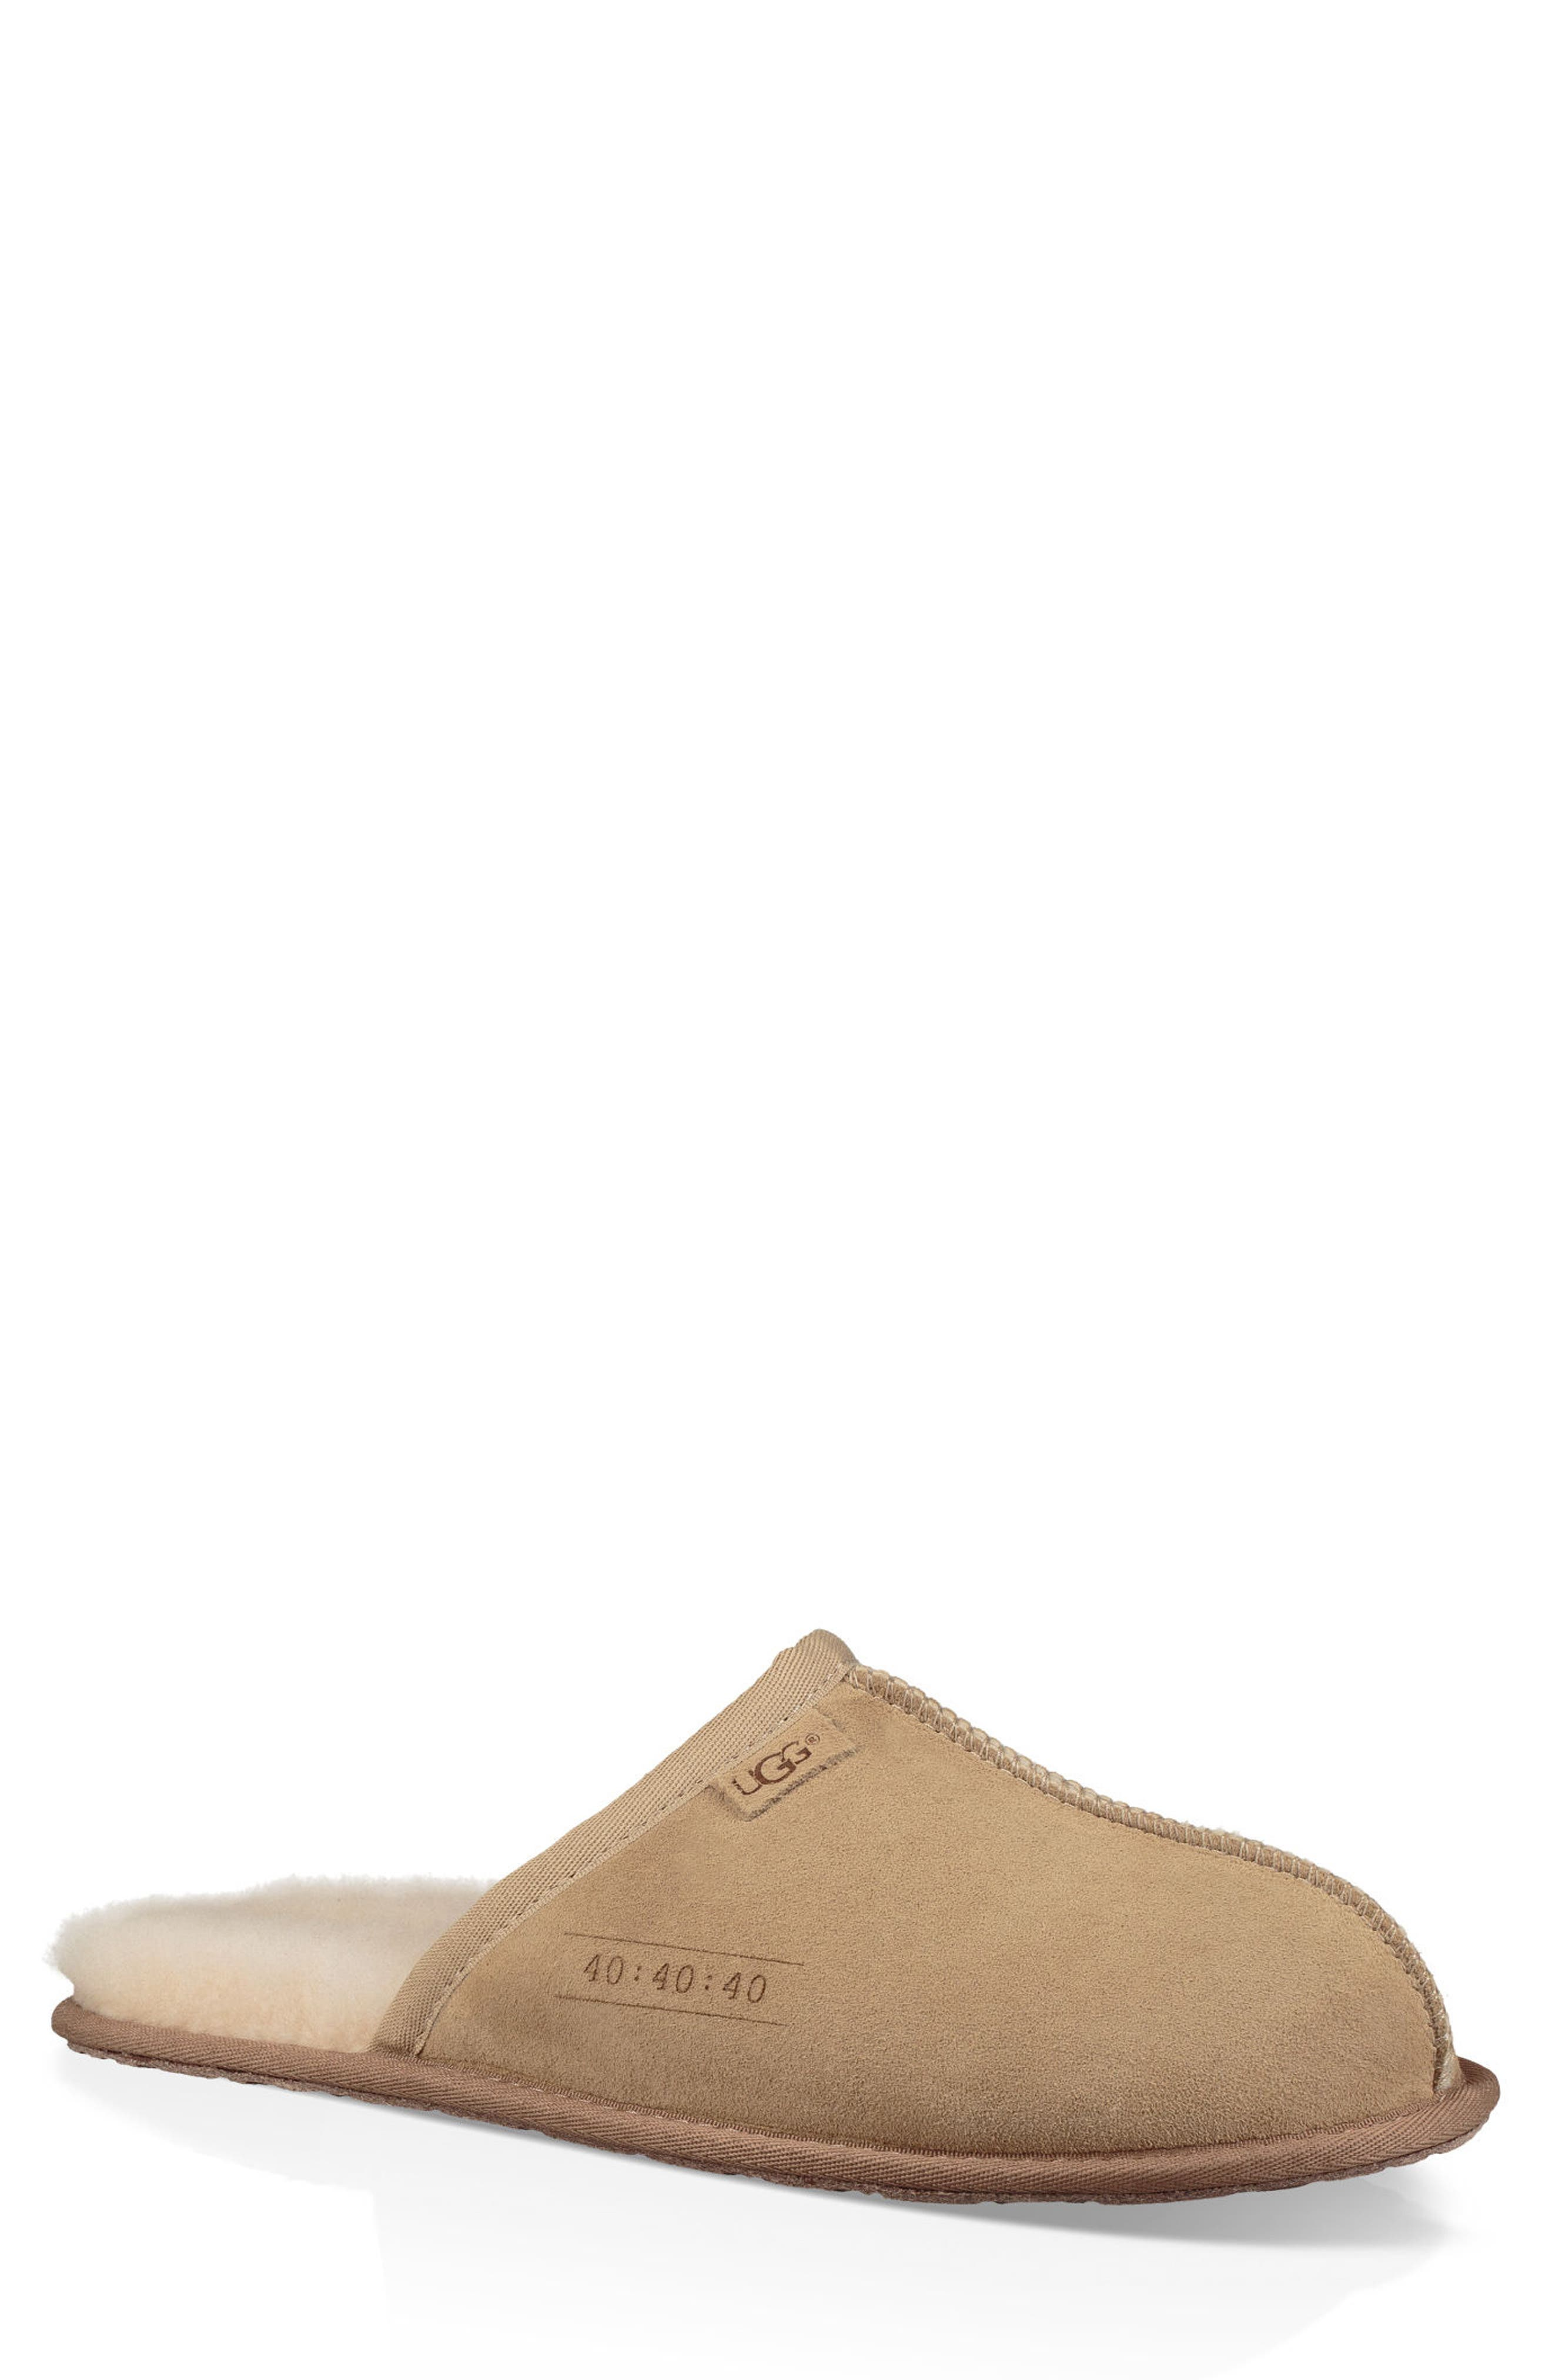 UGG® Scuff 40:40:40 Anniversary Genuine Shearling Slipper (Men) (Limited Edition)